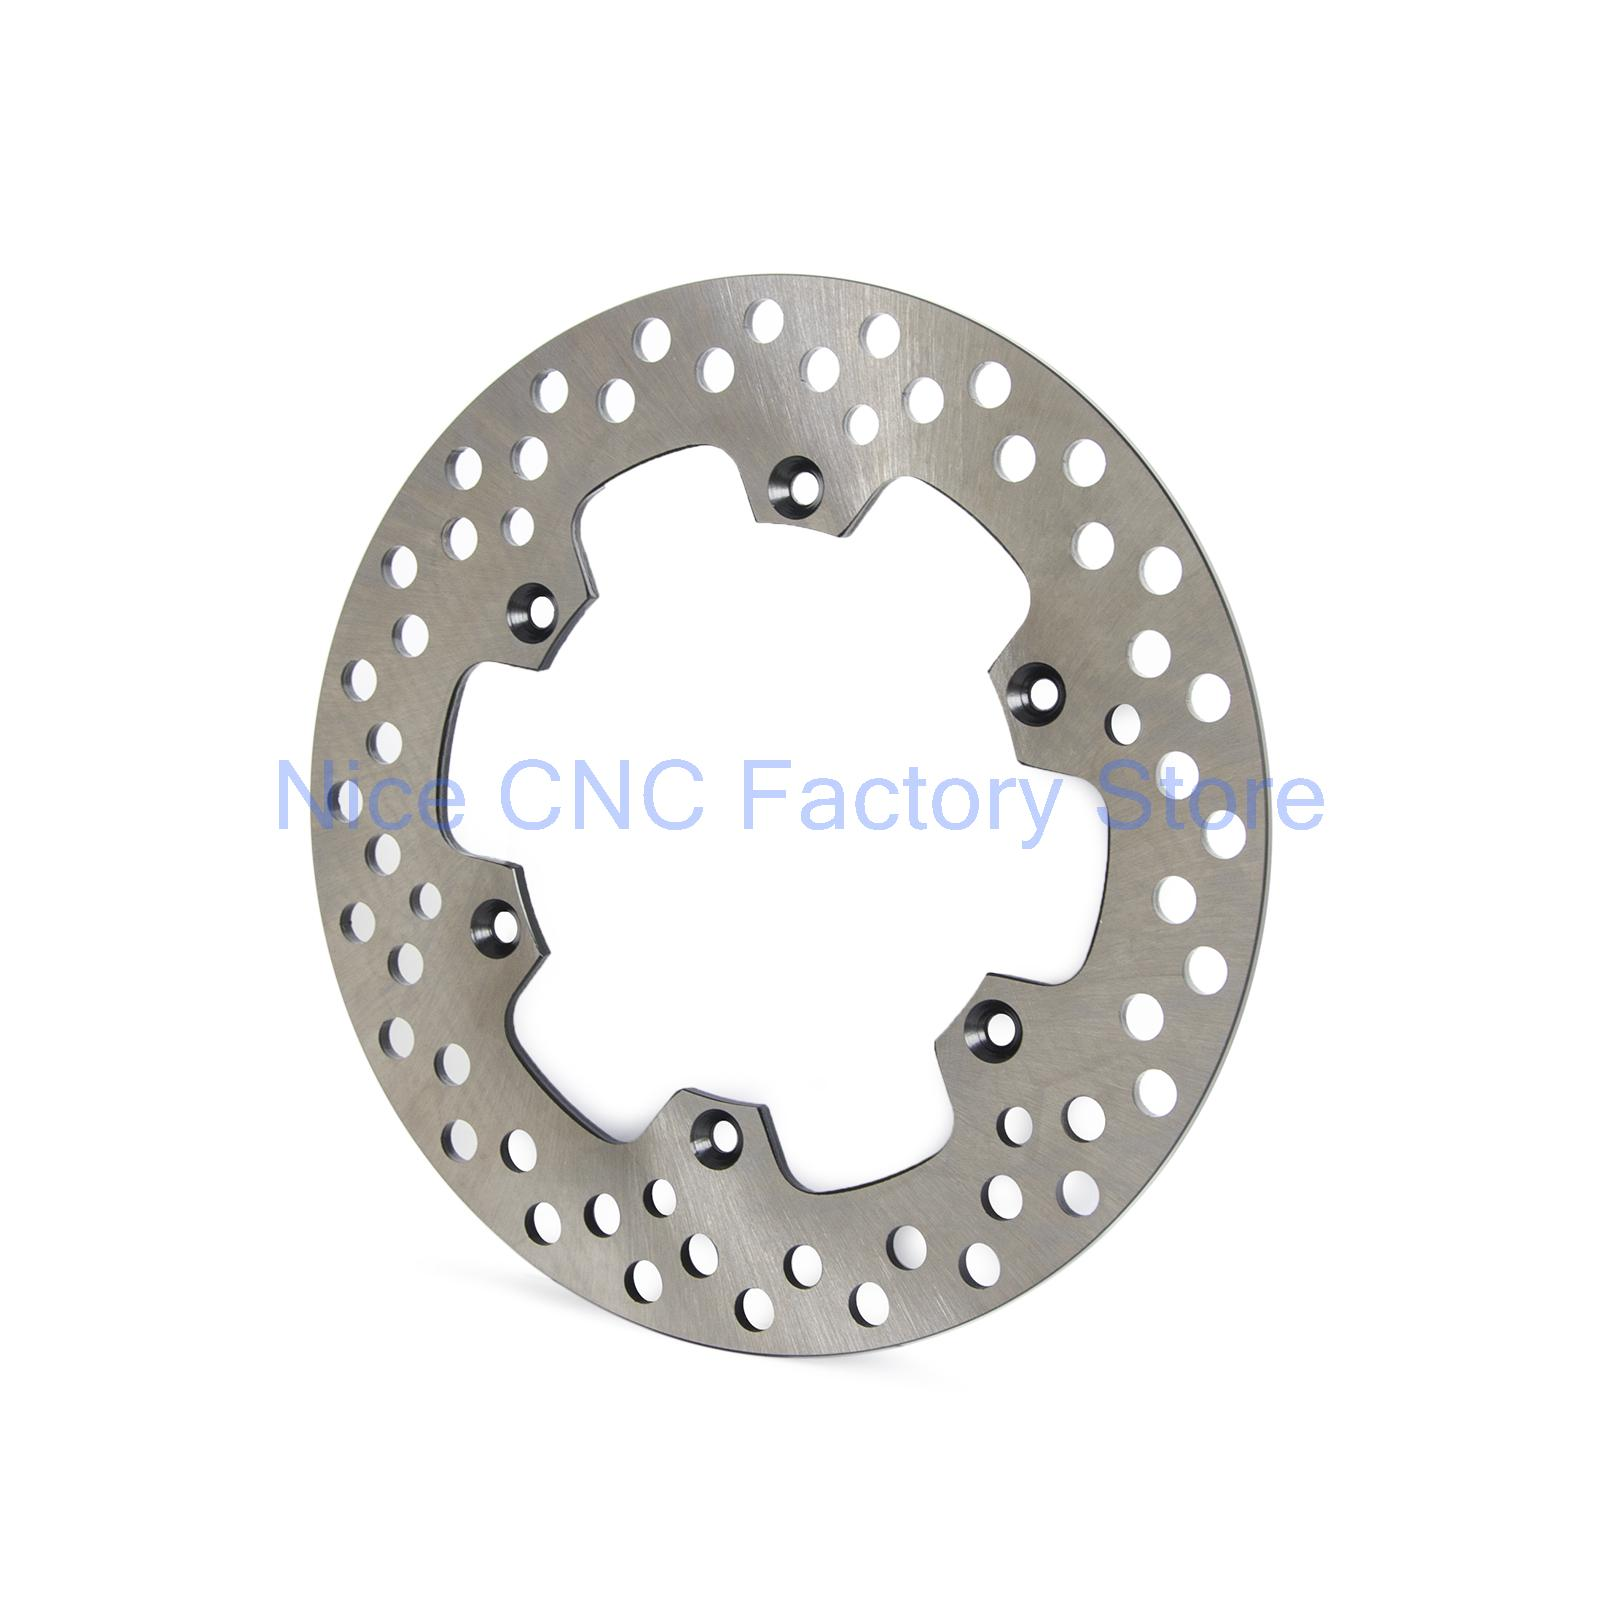 Motorcycle Rear Brake Disc For Suzuki DR125 08-12 RM125 88-98 RM250 87-98 RMX250 95-97 DR-Z400 00-09 KLX400 KLX400R 03 04 NEW 220mm rear brake disc rotor for suzuki rm125 rm 125 1988 1995 rm250 250 1996 1999 rmx250 rmx drz400 drz400 srz400s drz400e